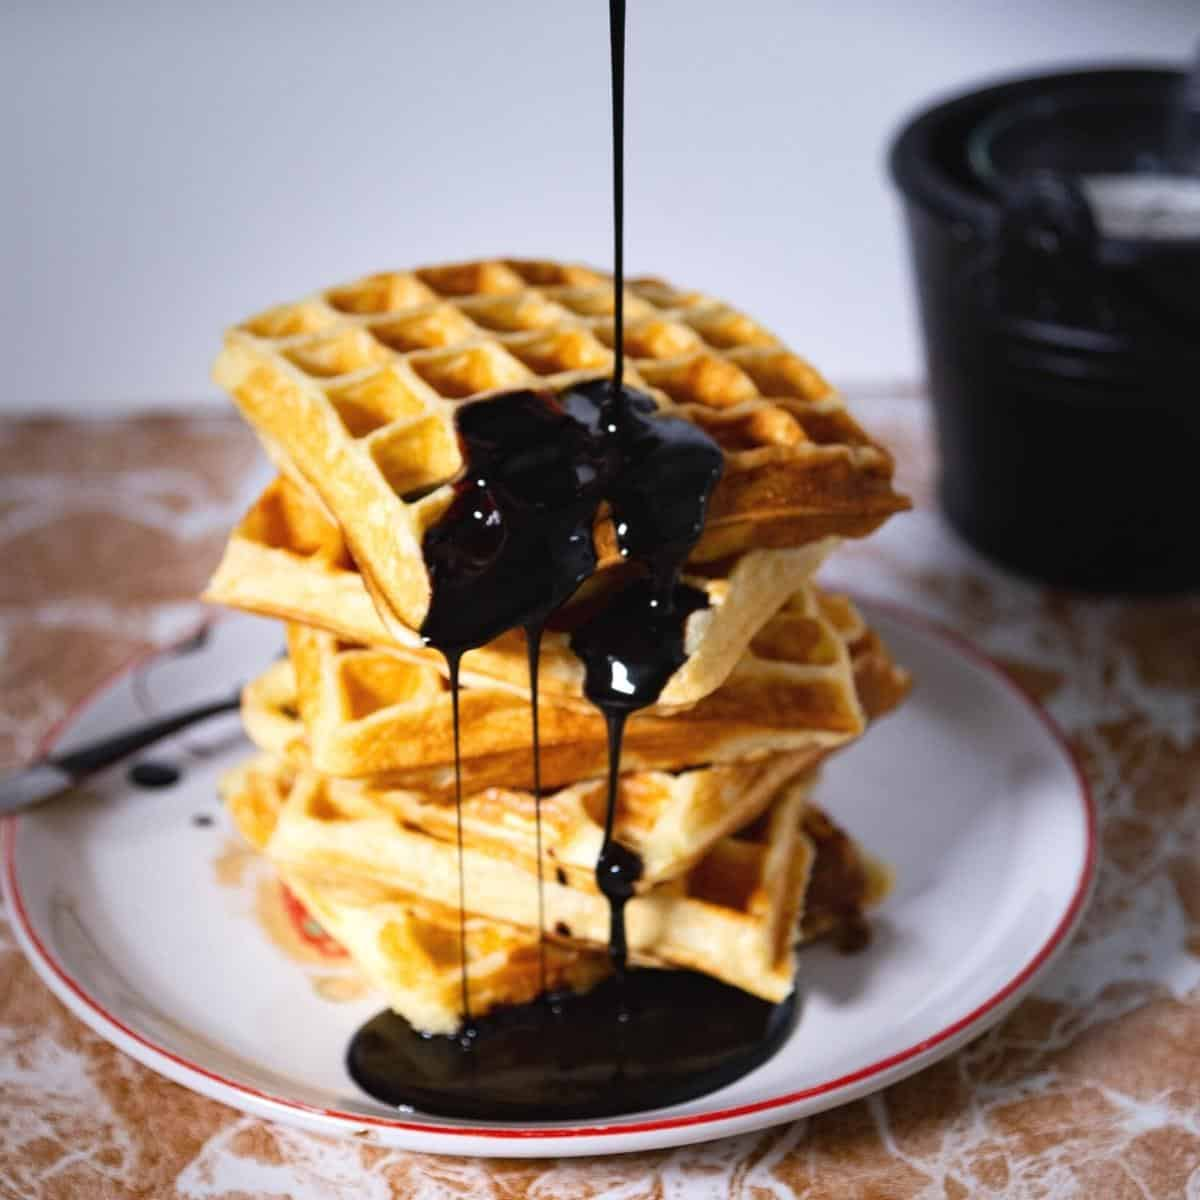 Waffles with pouring chocolate syrup.